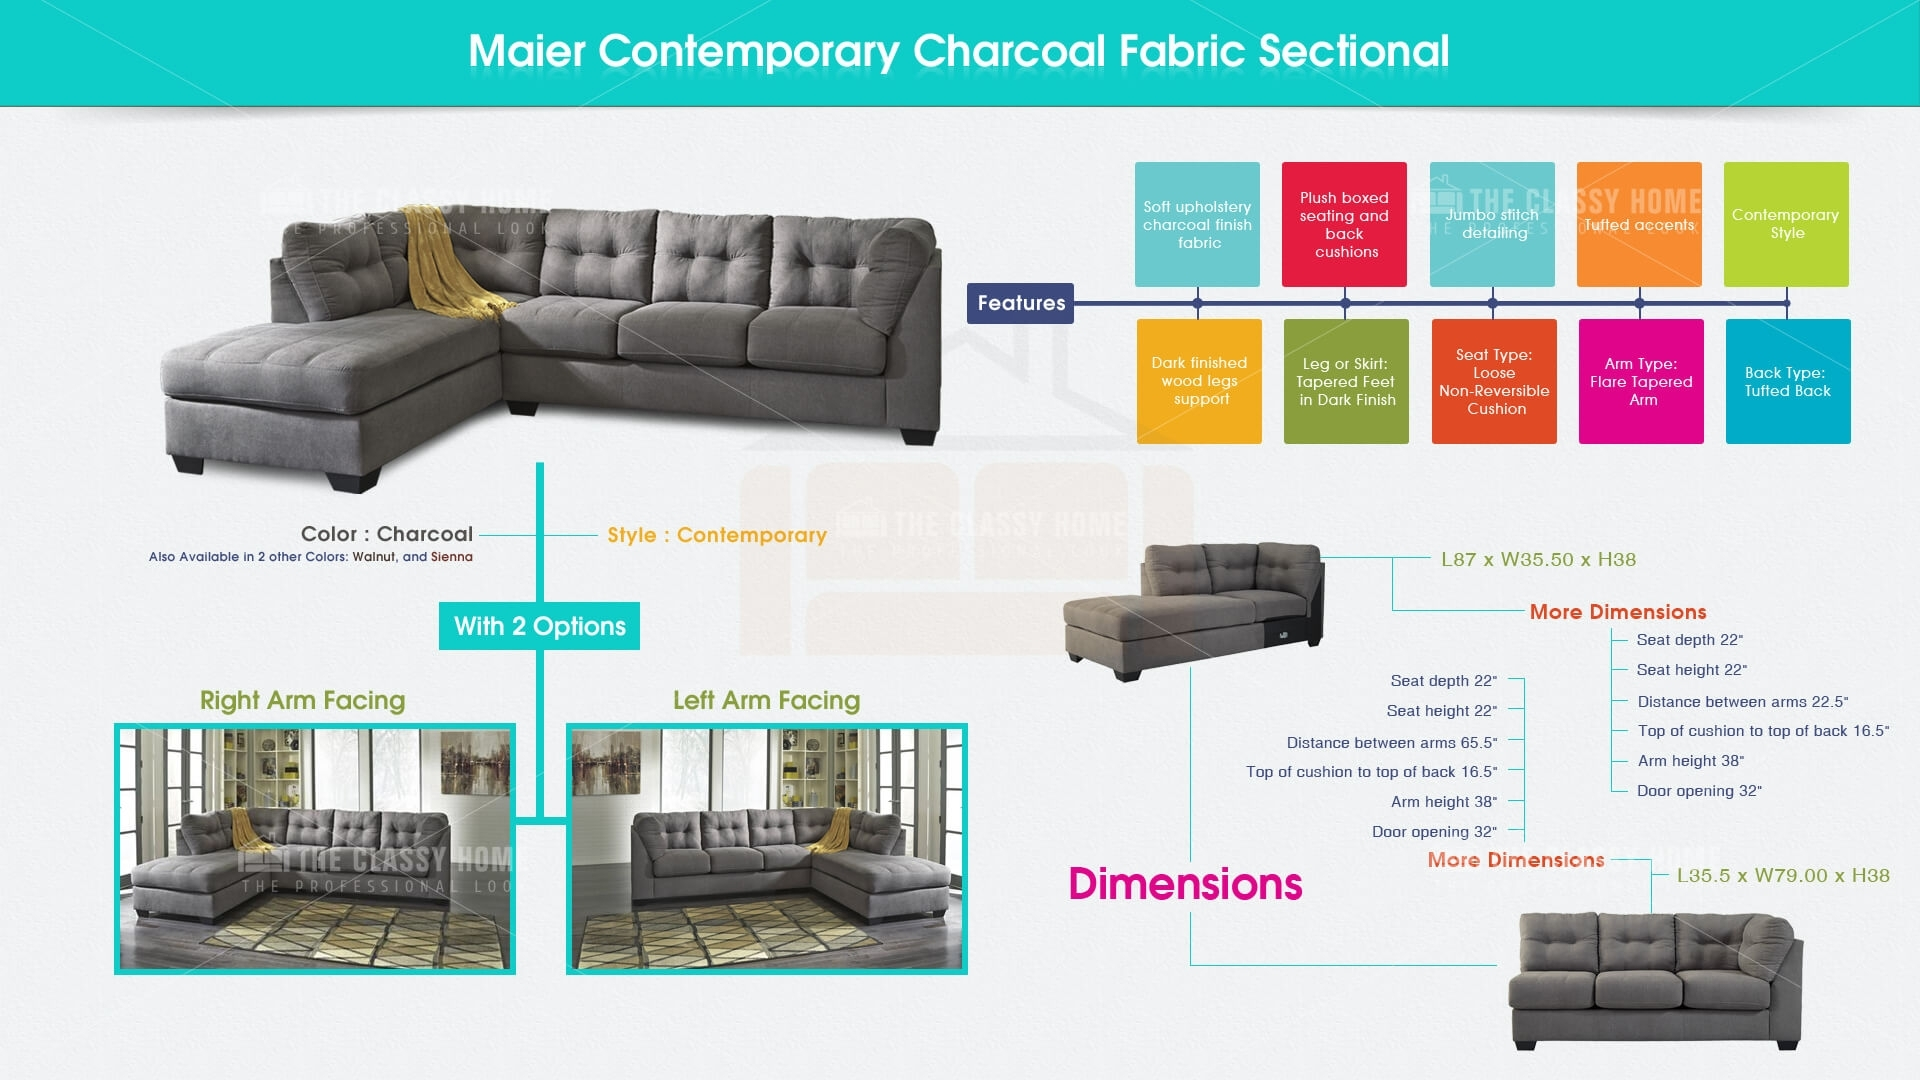 Ashley Furniture Maier Charcoal Raf Chaise Sectional | The Classy Home with Lucy Dark Grey 2 Piece Sleeper Sectionals With Laf Chaise (Image 4 of 30)